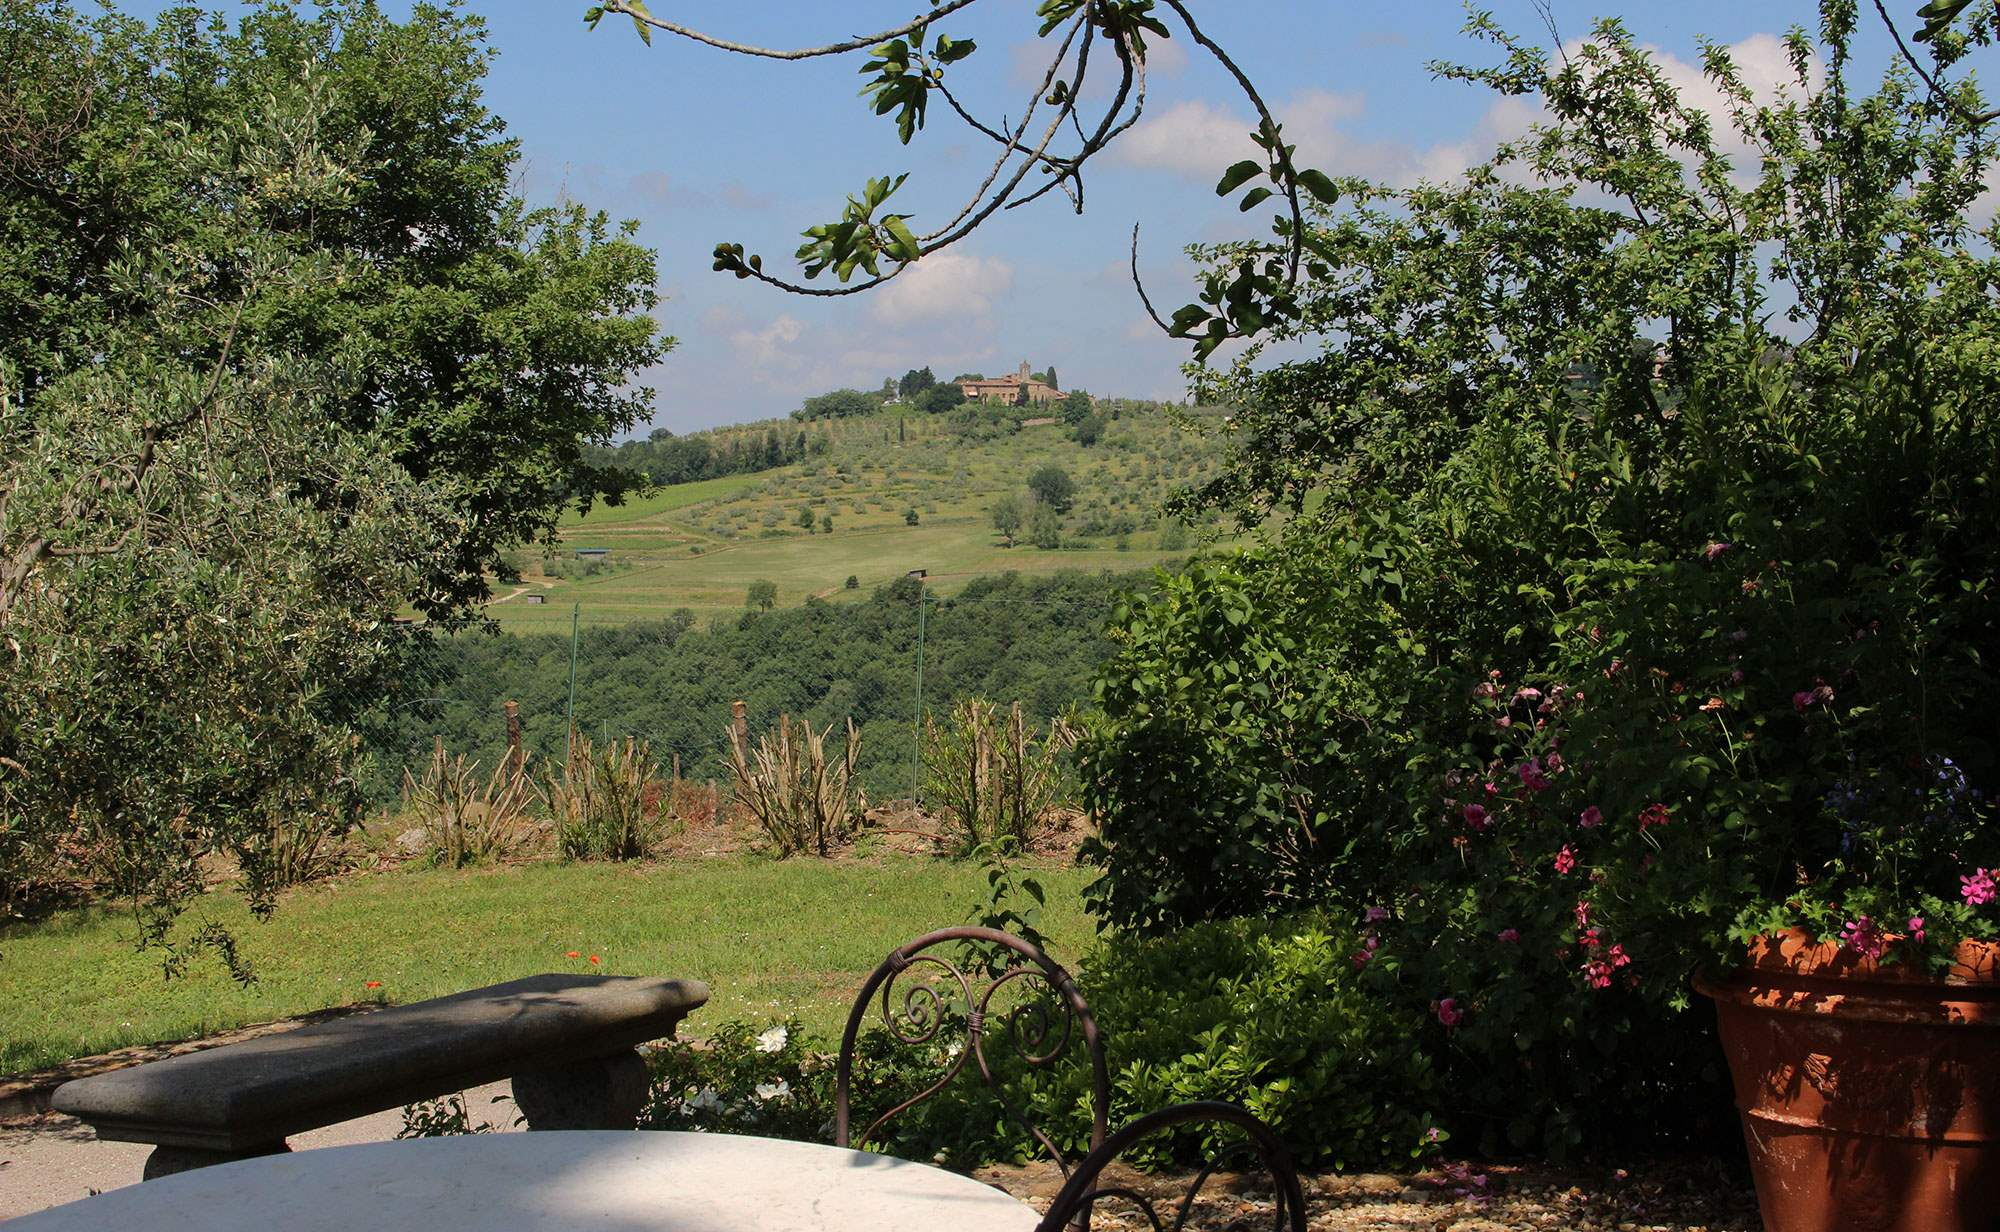 Villa Giacinto, 6 Bedroom rate, 6 bedroom villa in Chianti & Countryside, Tuscany Photo #33